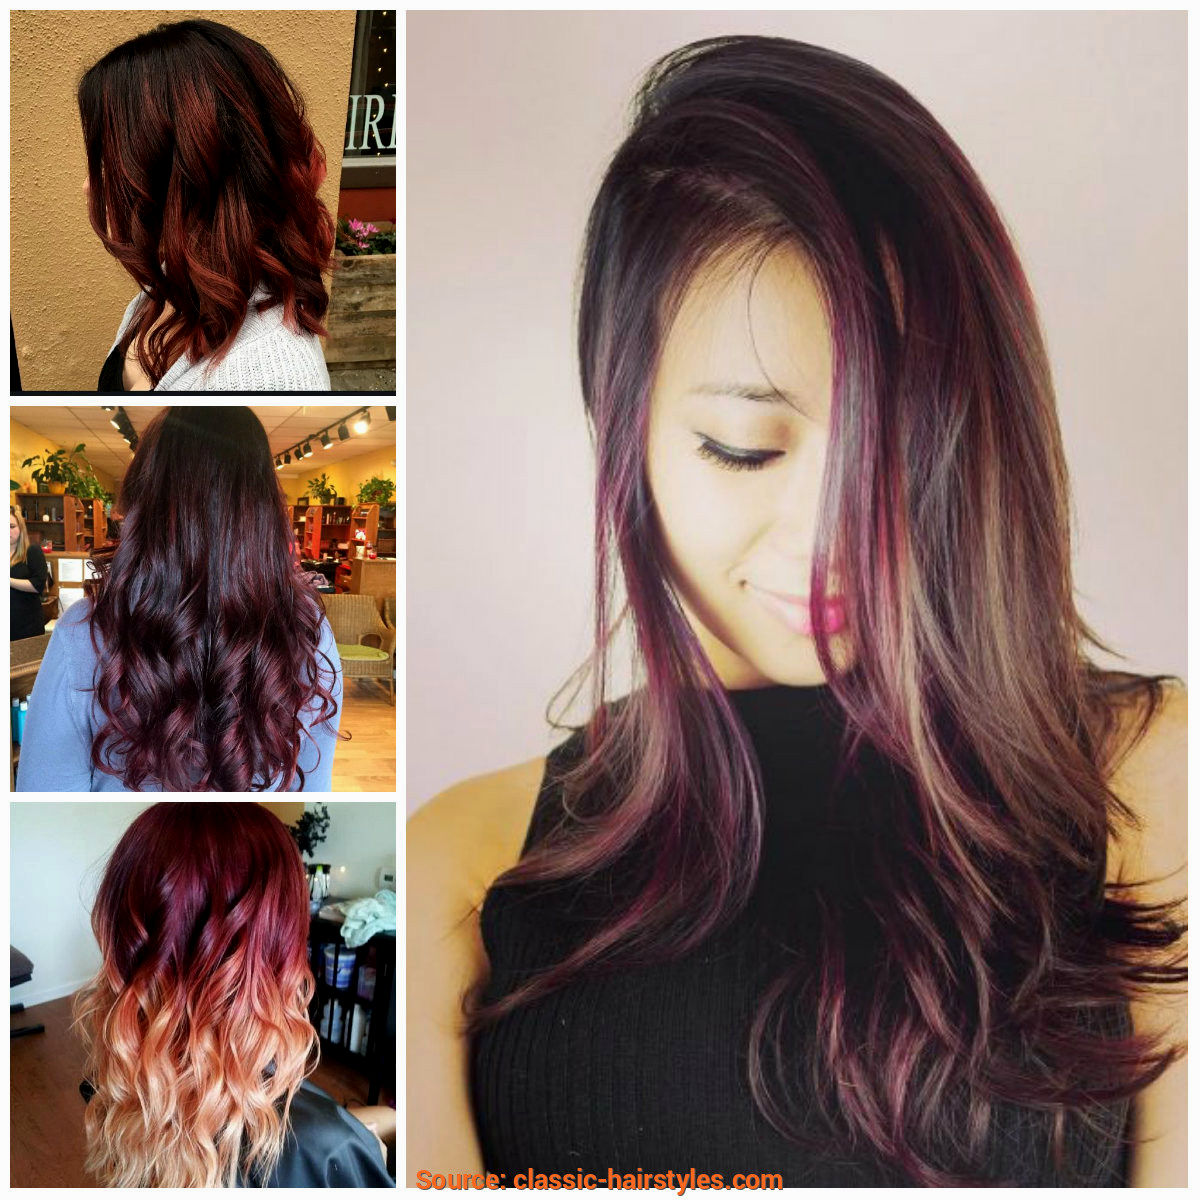 Wonderfully stunning hairstyles for thick-haired photo-Luxury Hairstyles For Thick Hair Concepts